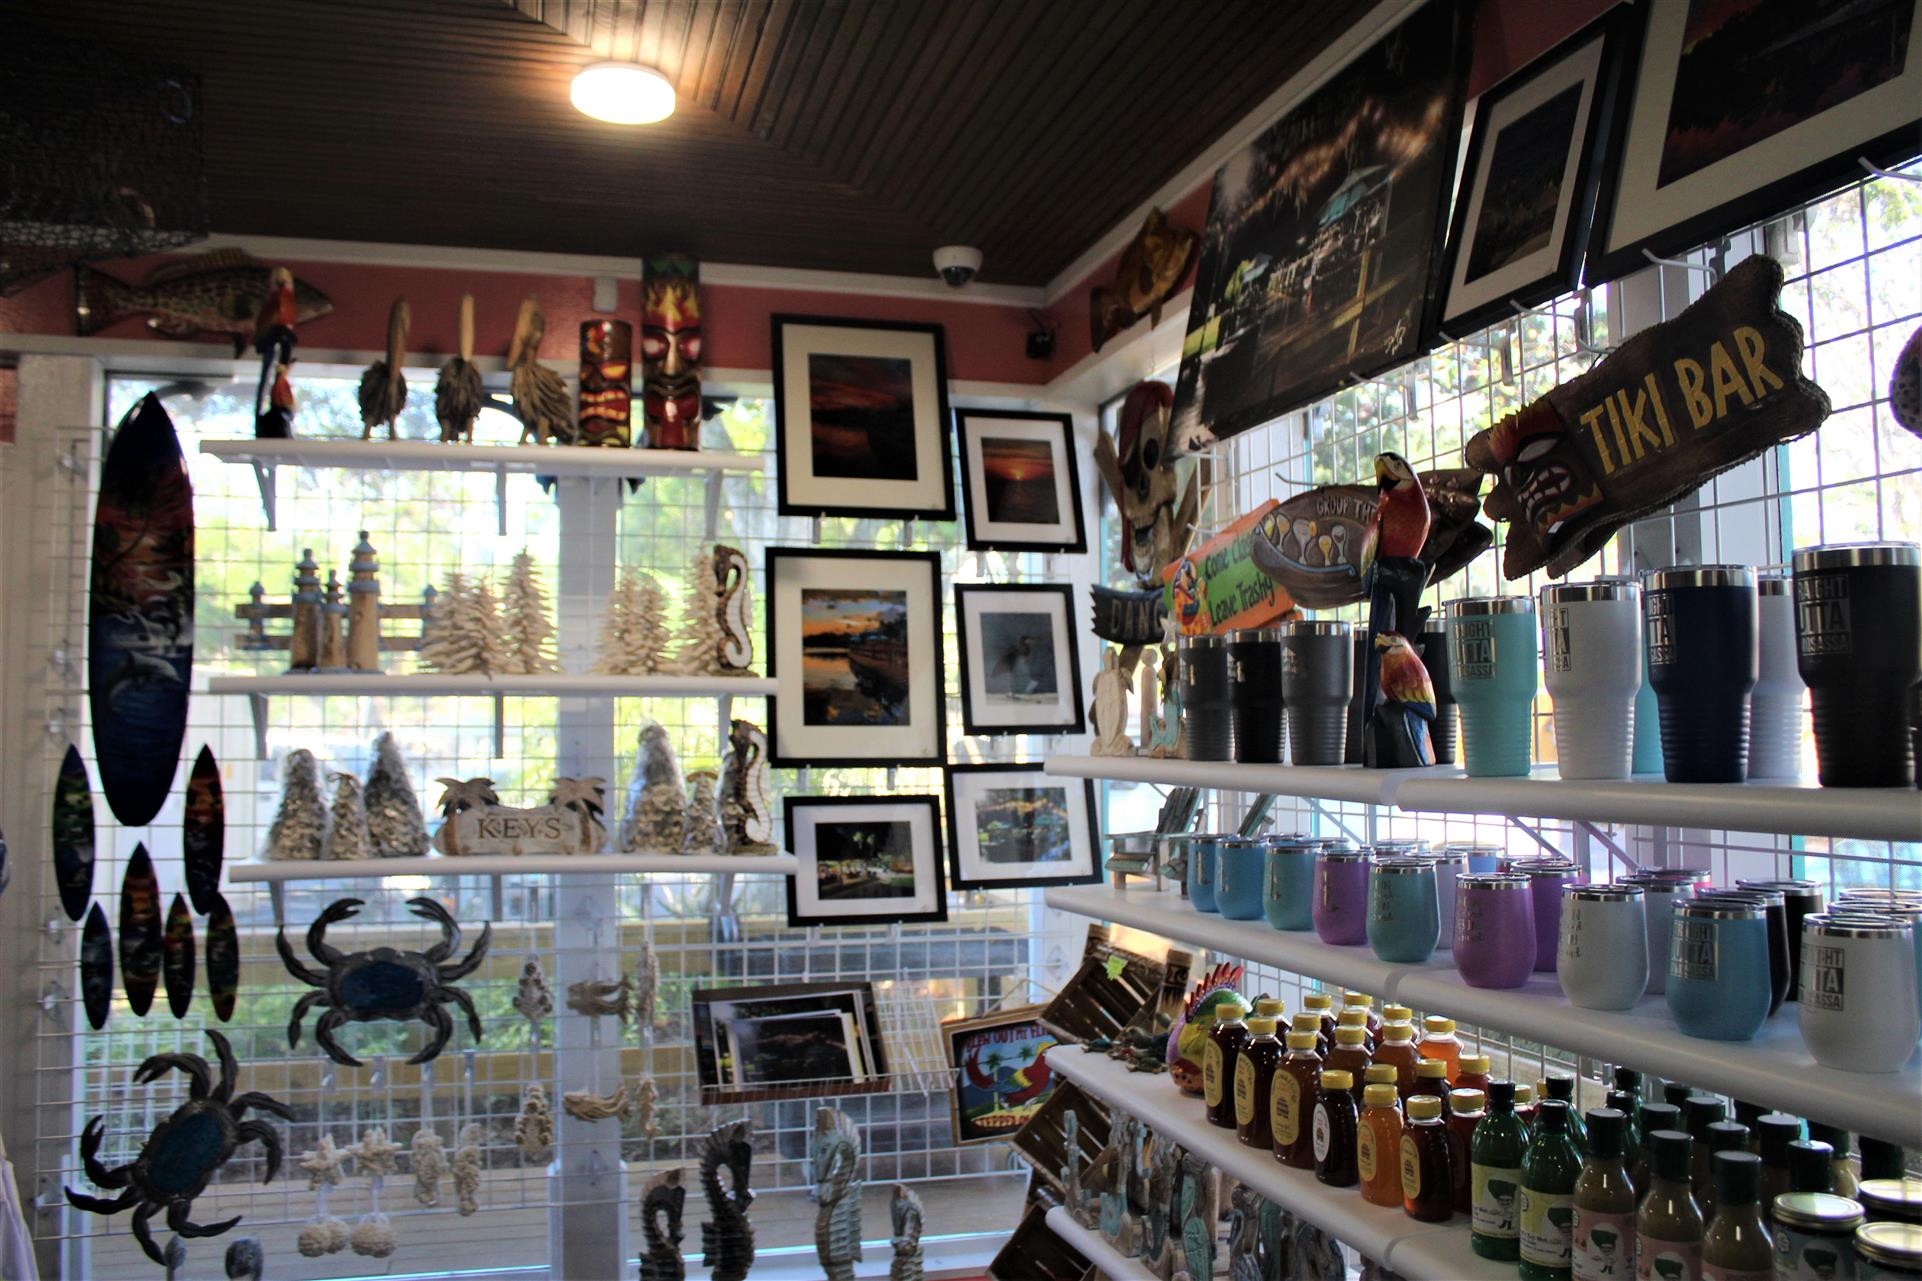 a gift shop that sells, signs, tumblers, pictures, signs, sauces, and wall decor.